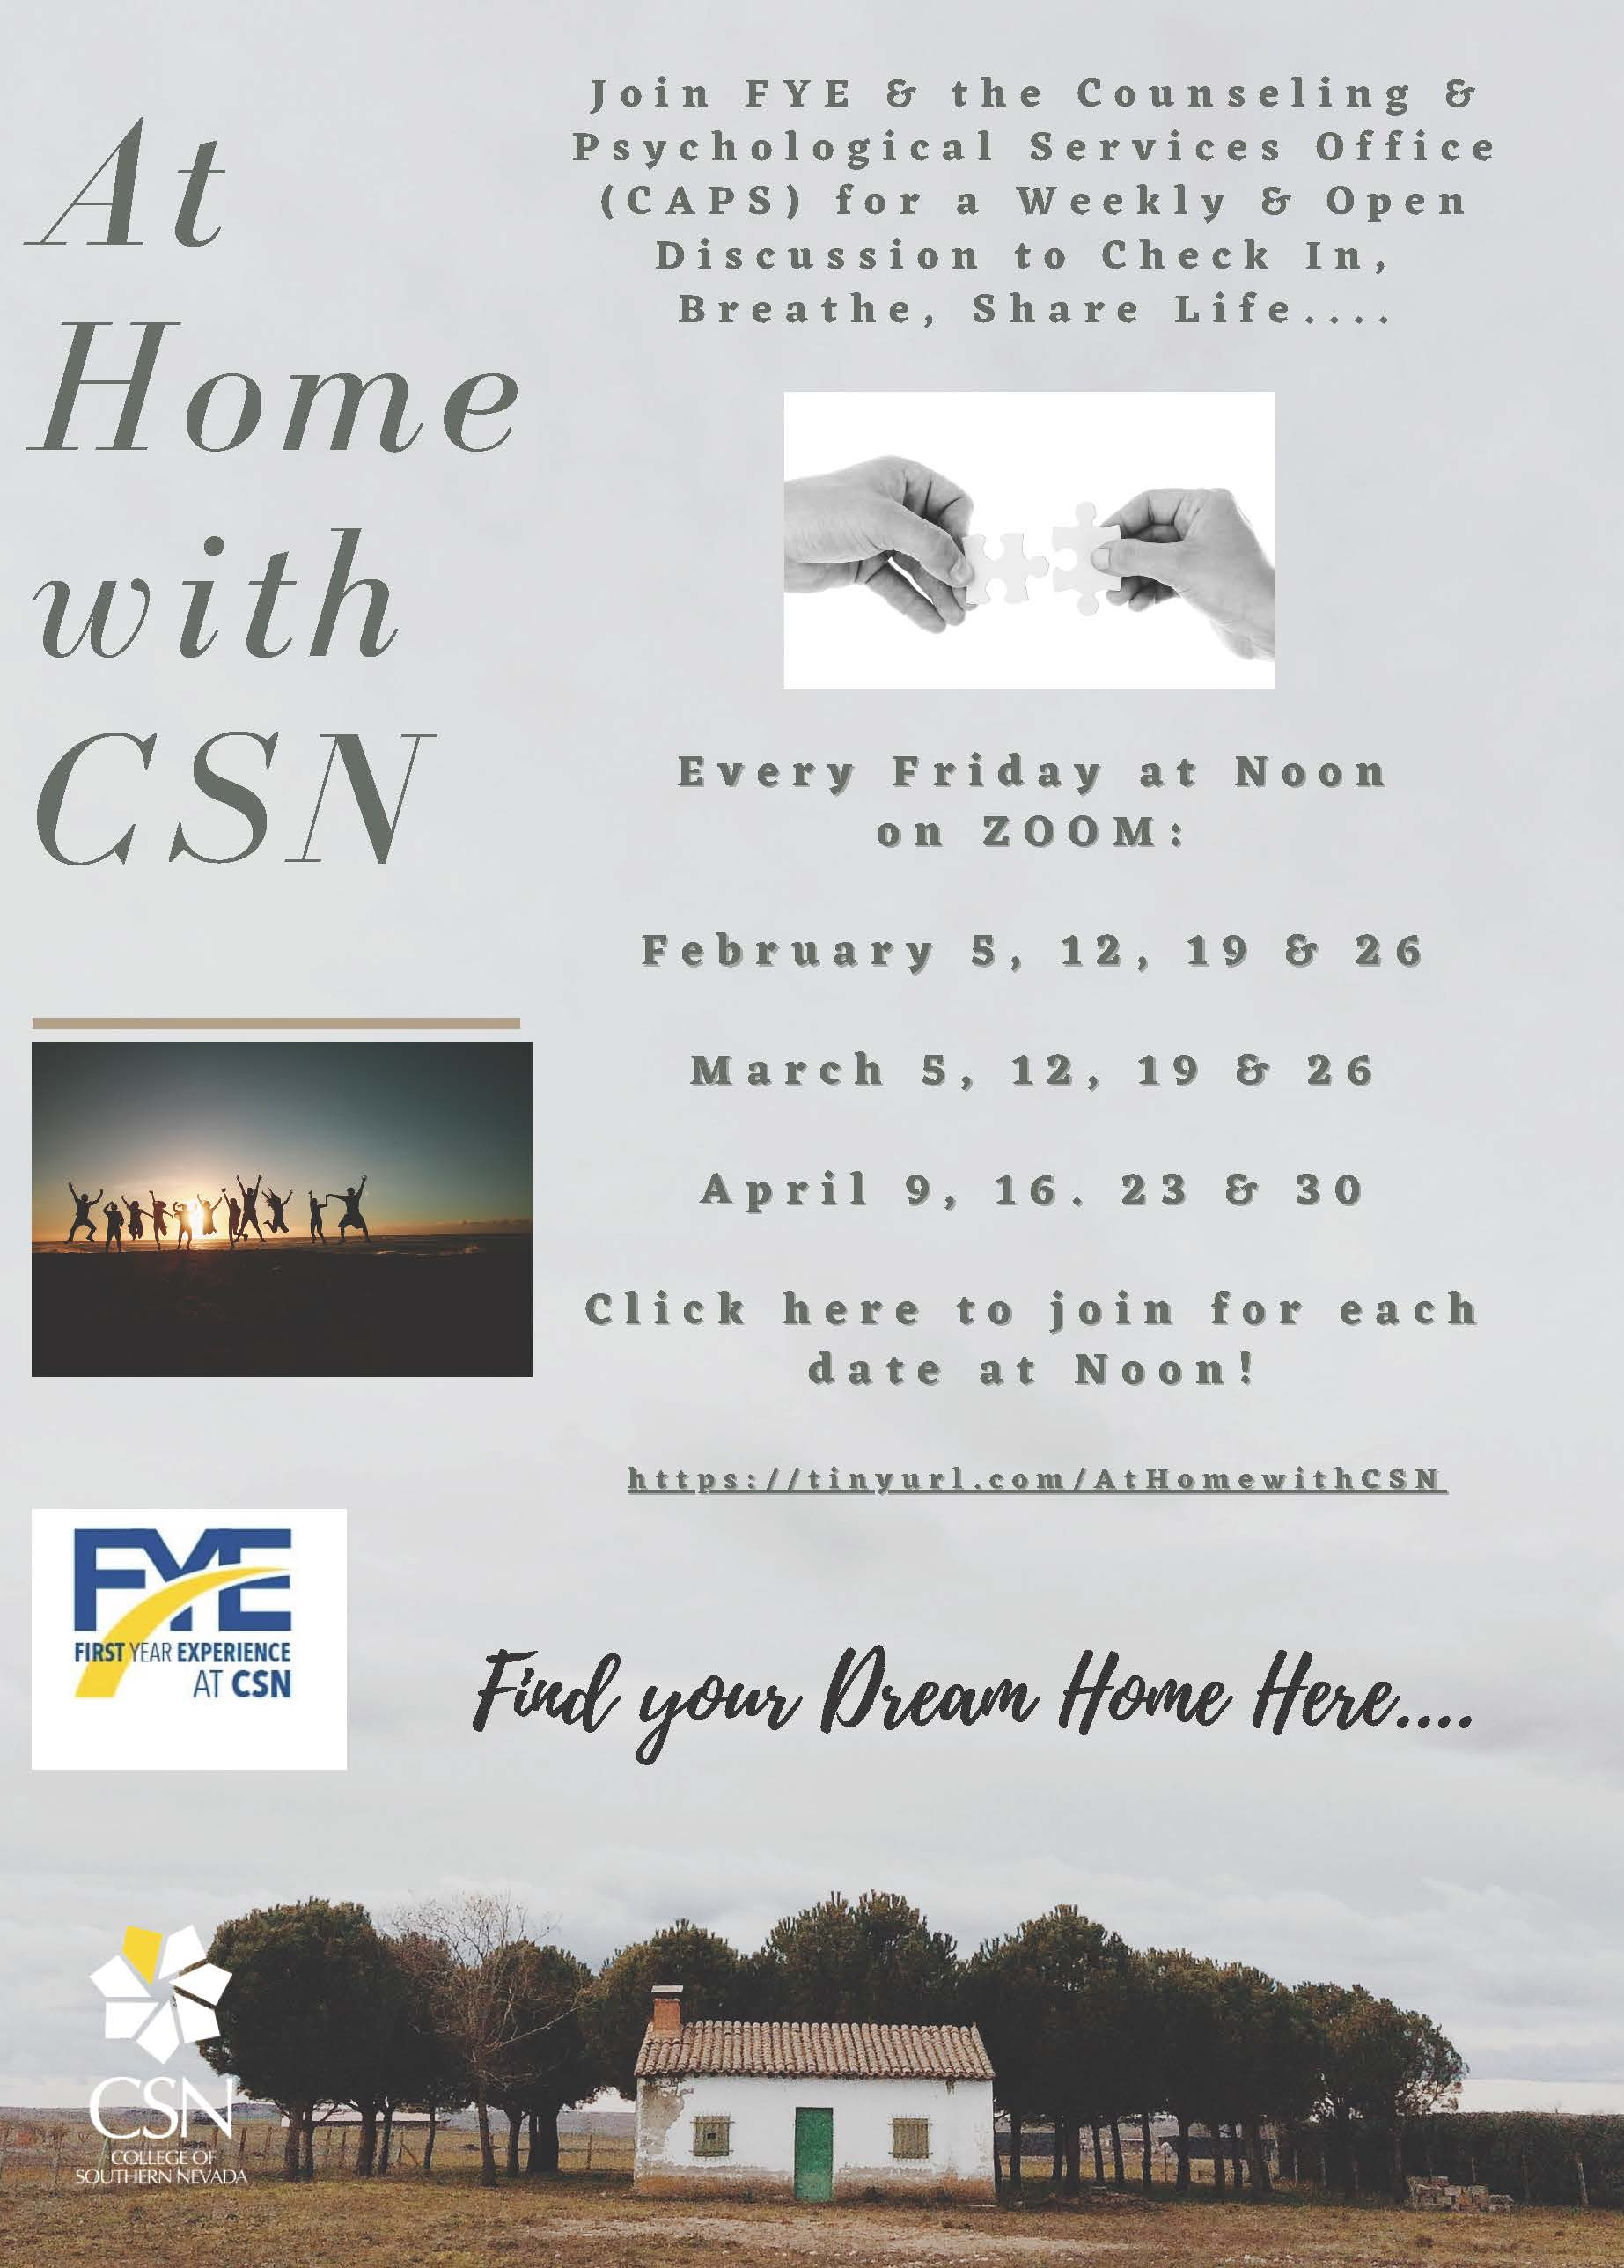 At home with CSN poster